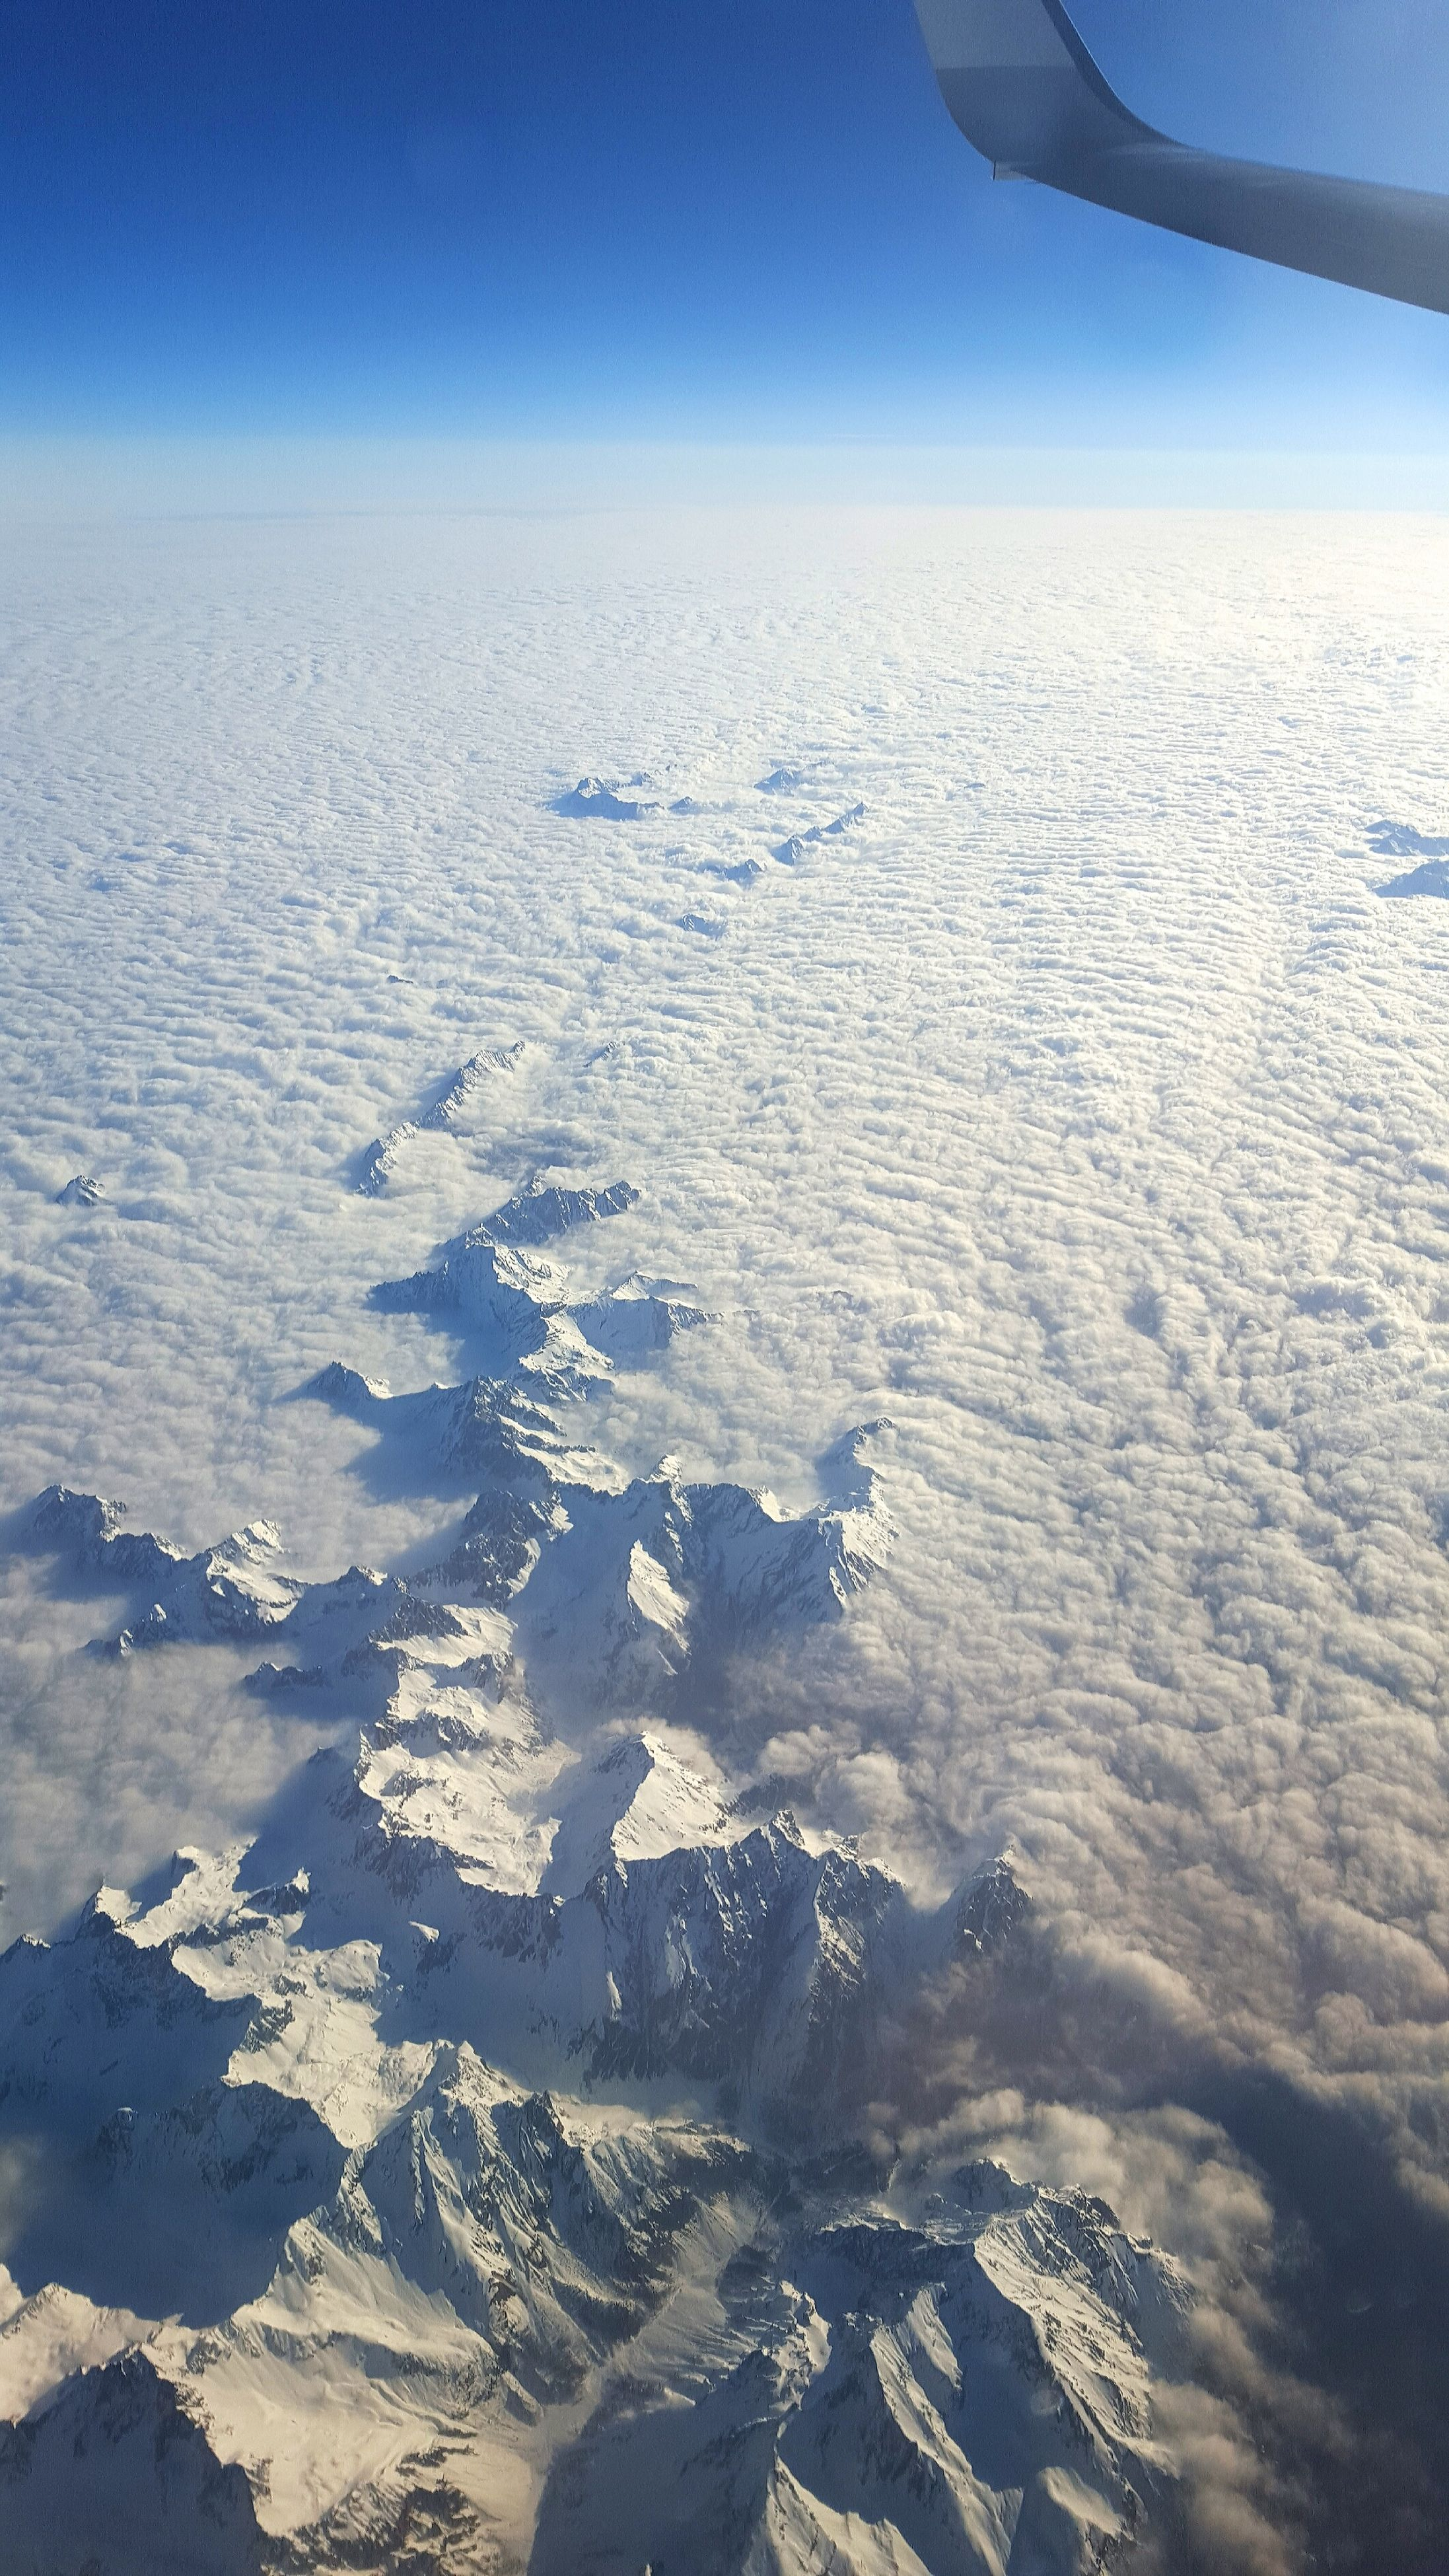 water, scenics, aerial view, tranquil scene, beauty in nature, tranquility, transportation, nature, flying, blue, landscape, part of, sea, sky, mode of transport, snow, winter, cropped, aircraft wing, travel